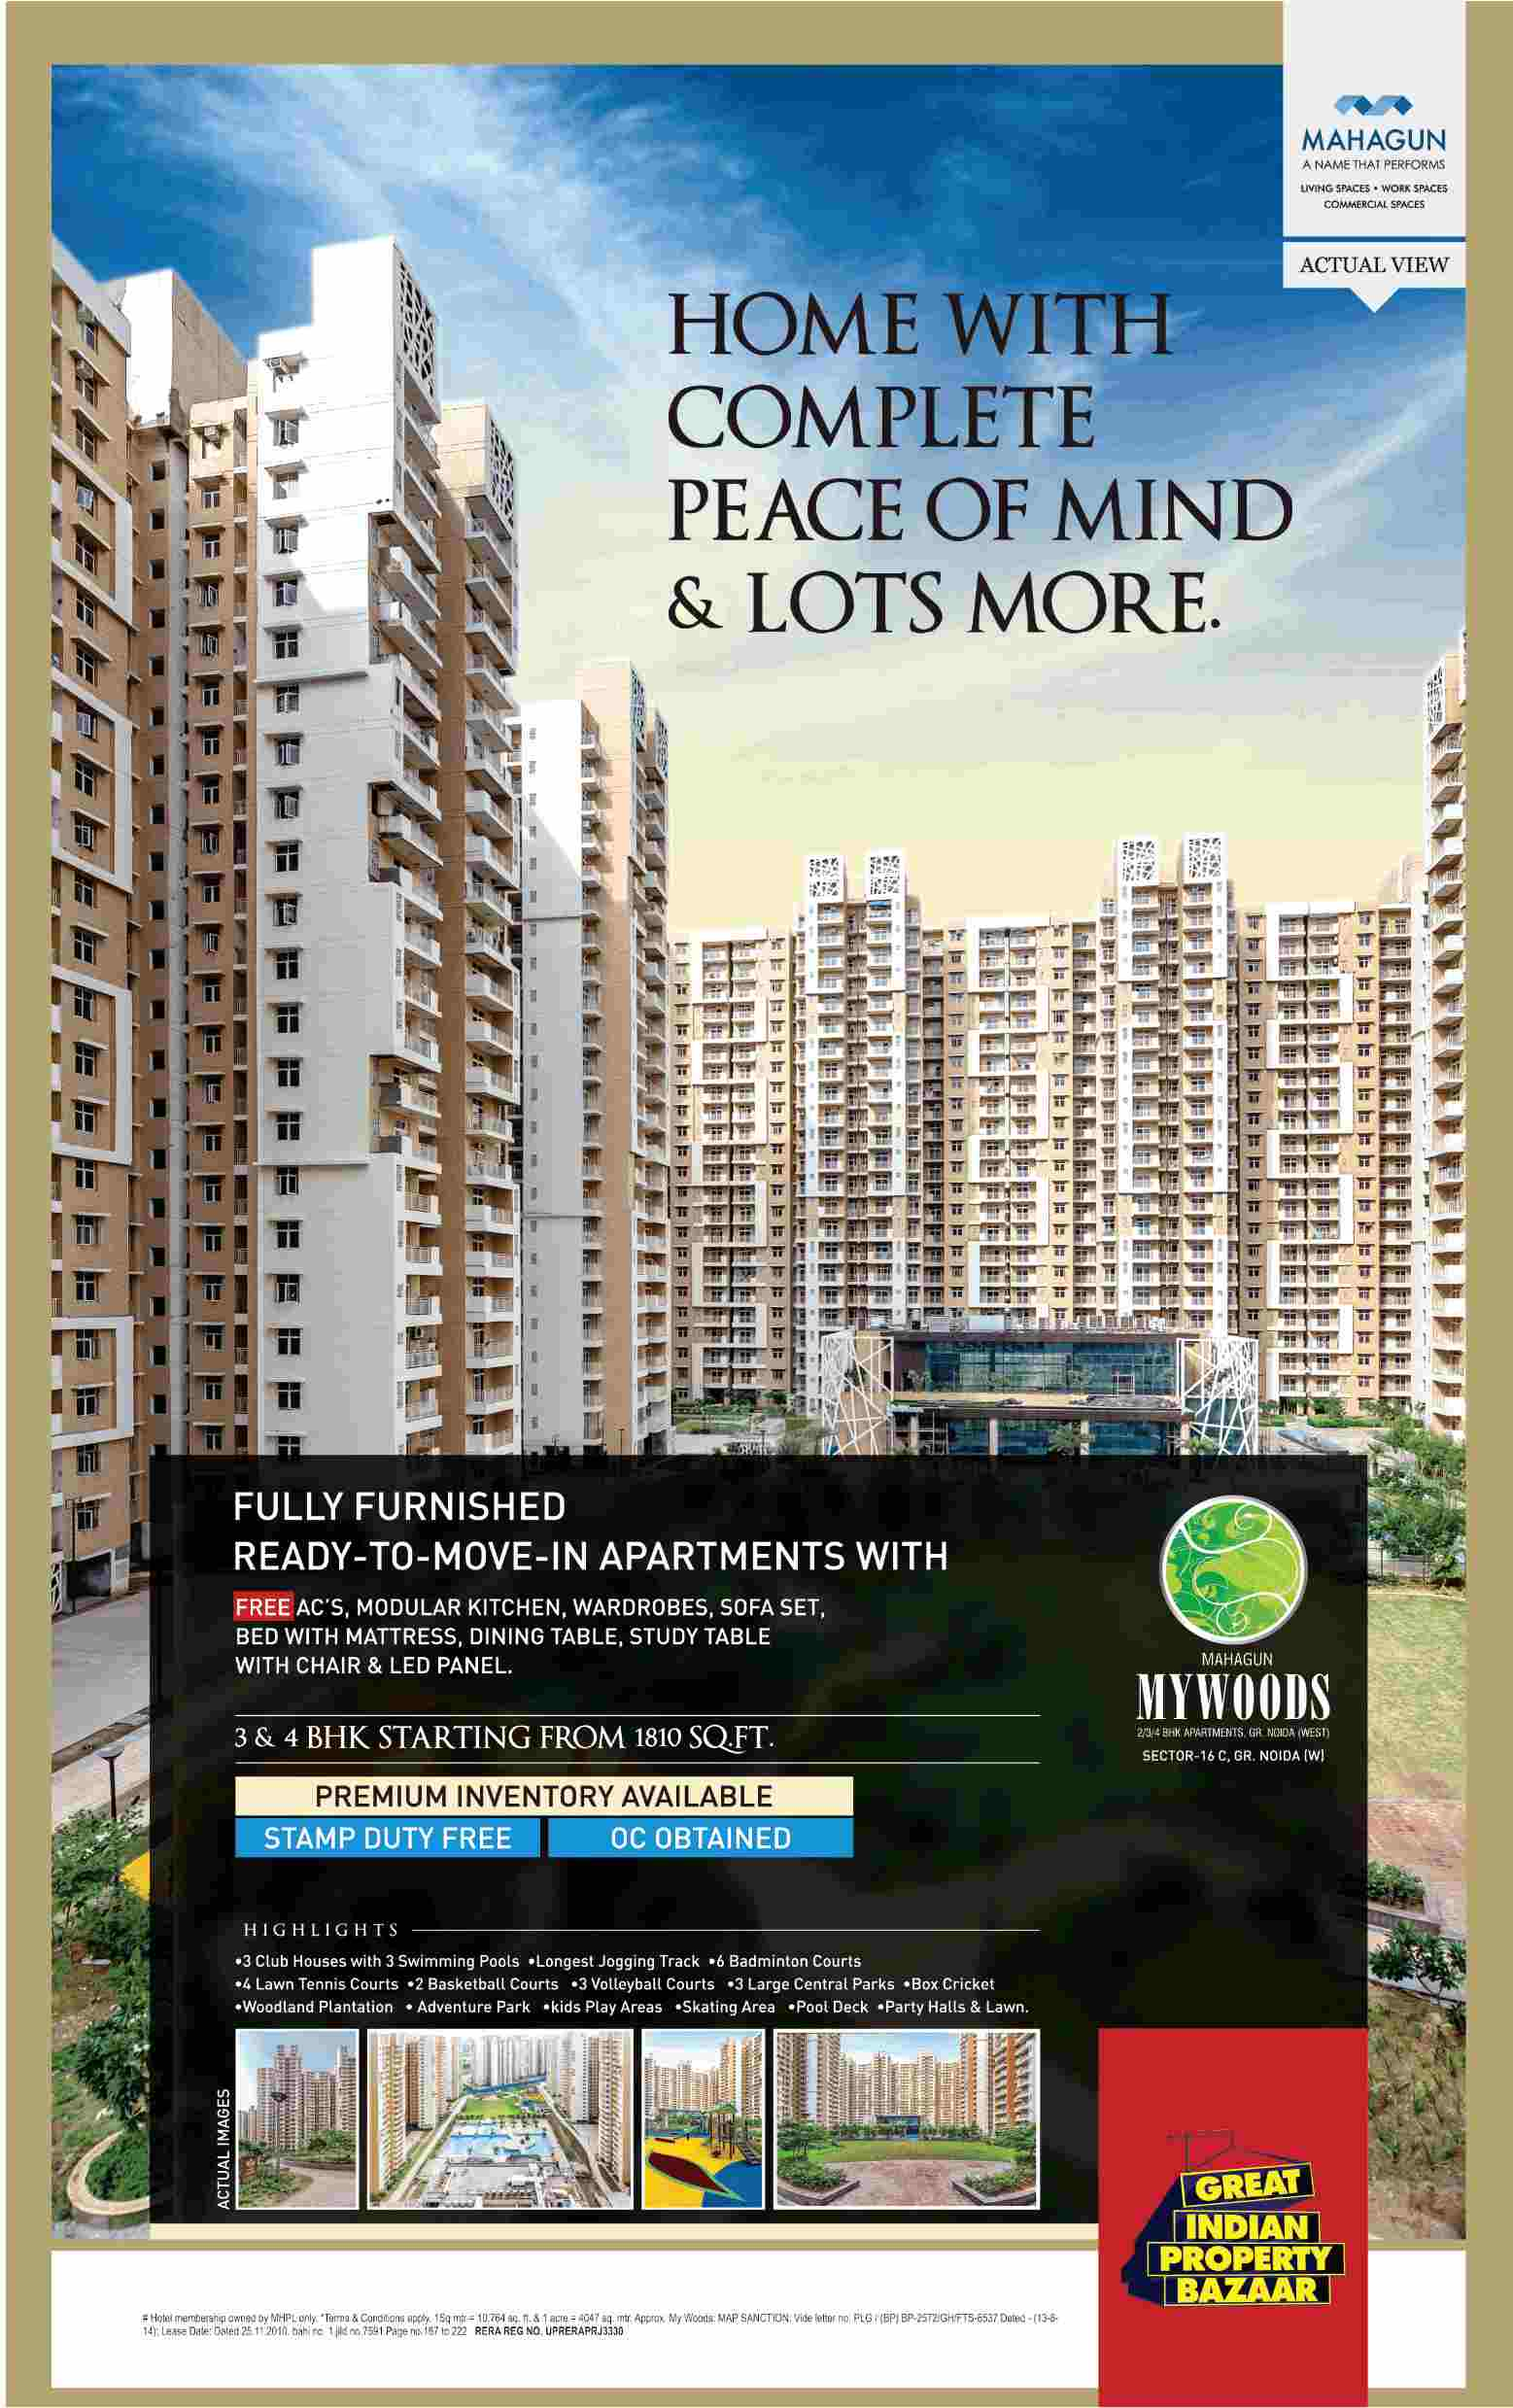 Reside in fully furnished ready to move apartments at Mahagun